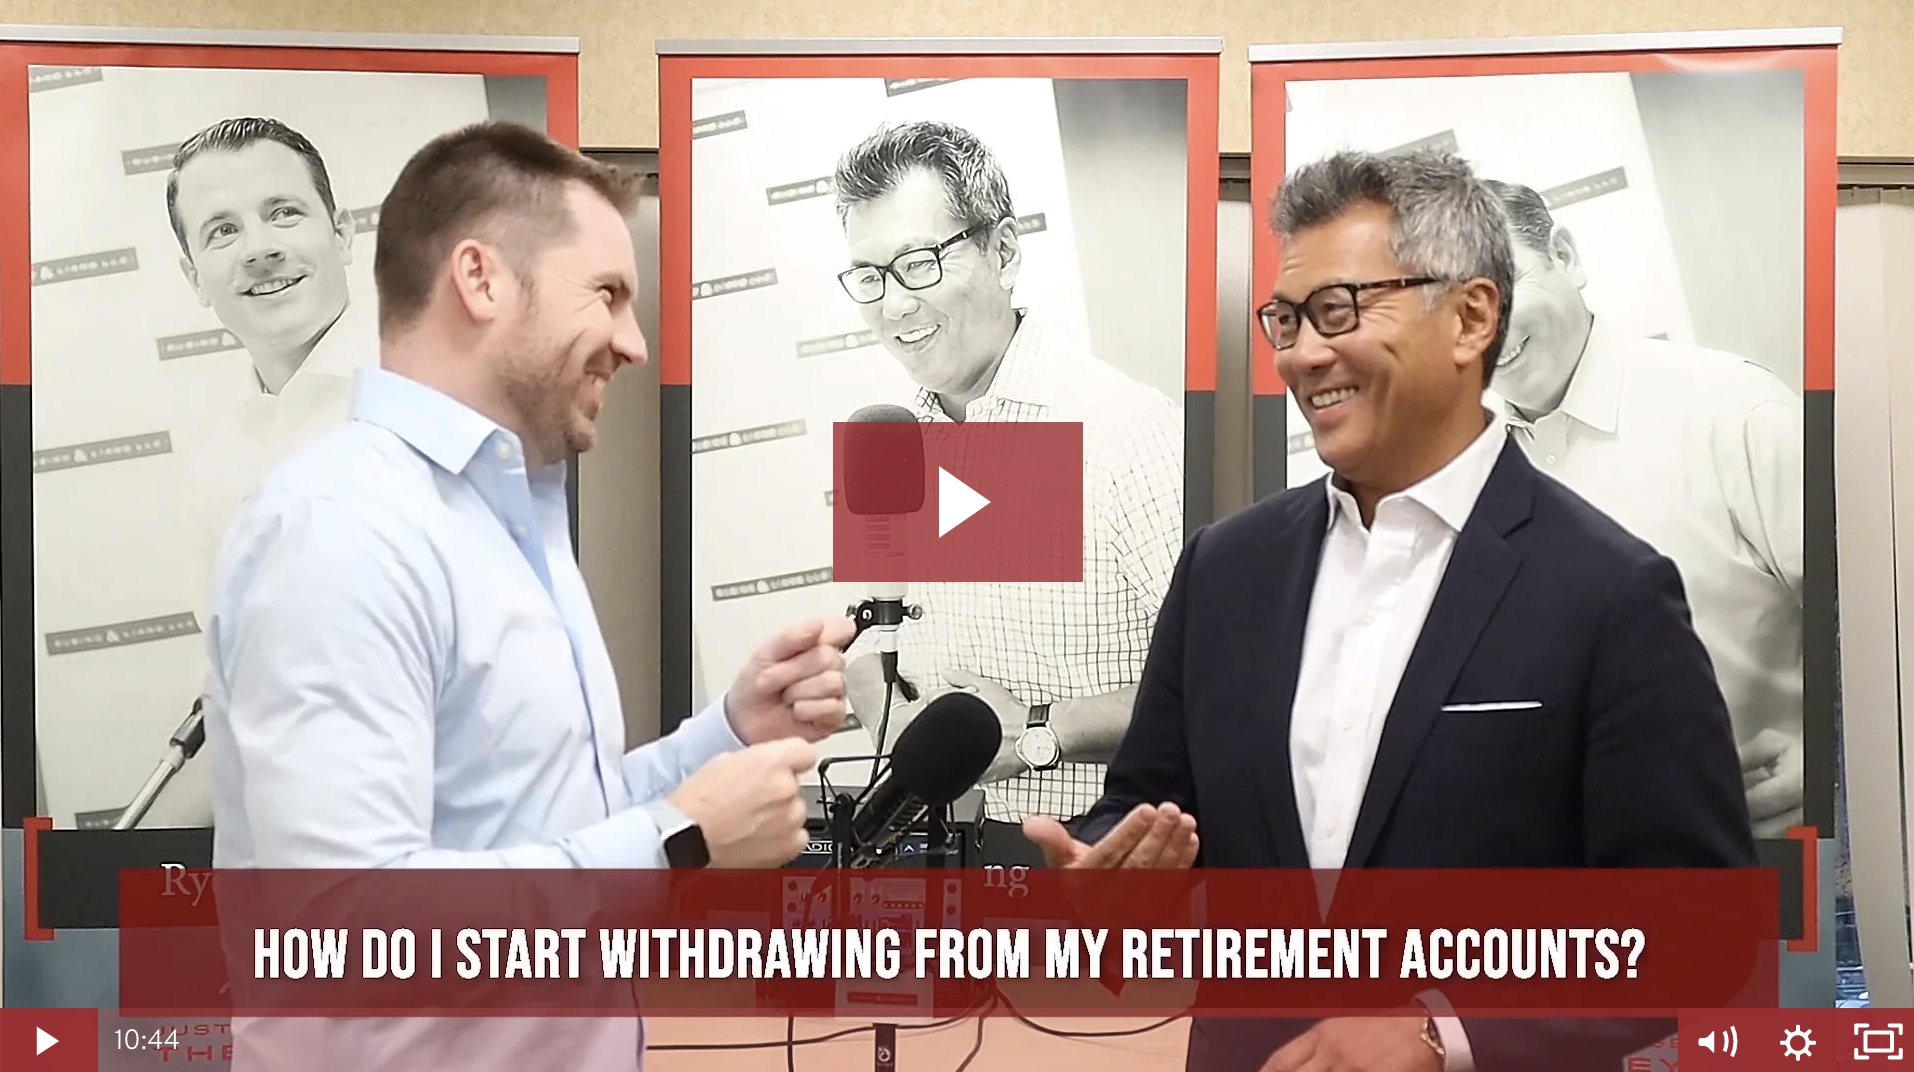 How To Start Withdrawing From Your Retirement Accounts